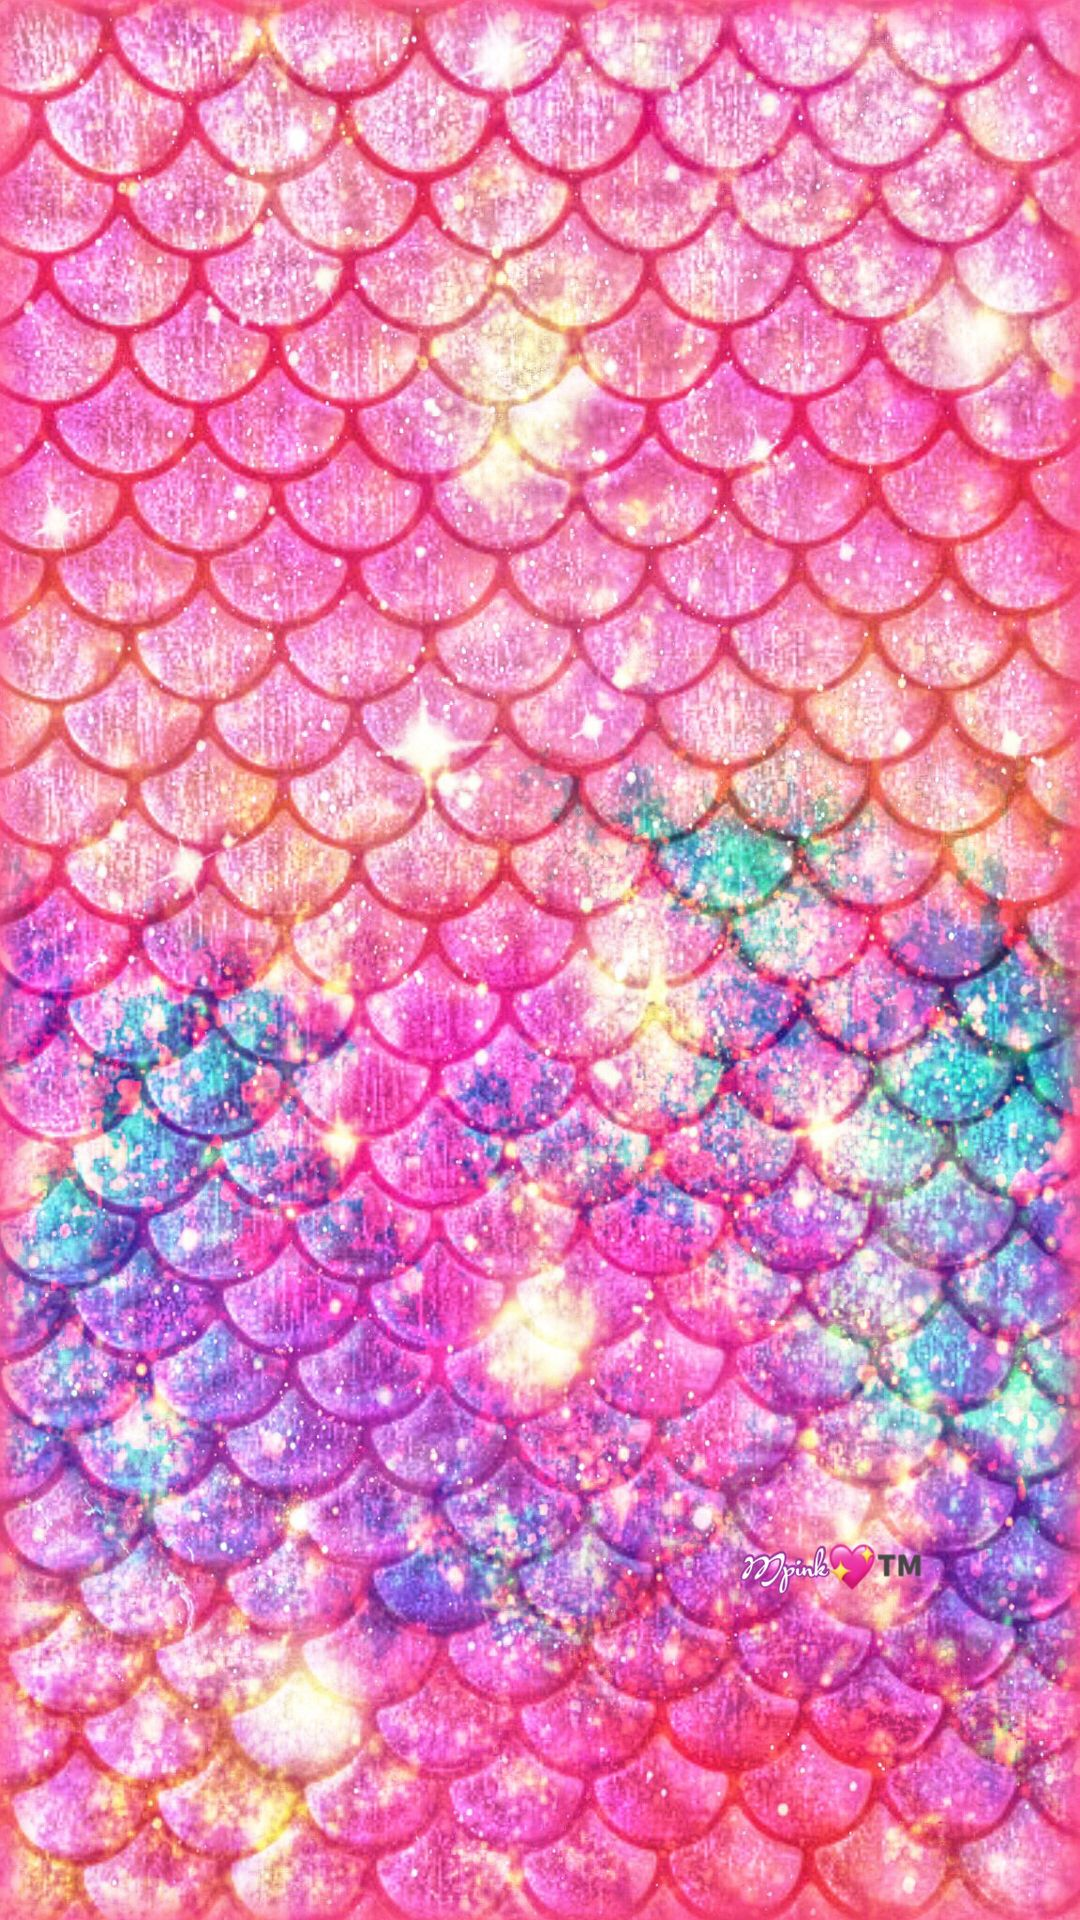 Mermaid Glitter Iphone Wallpaper Vintage Girly Home Screen Cute